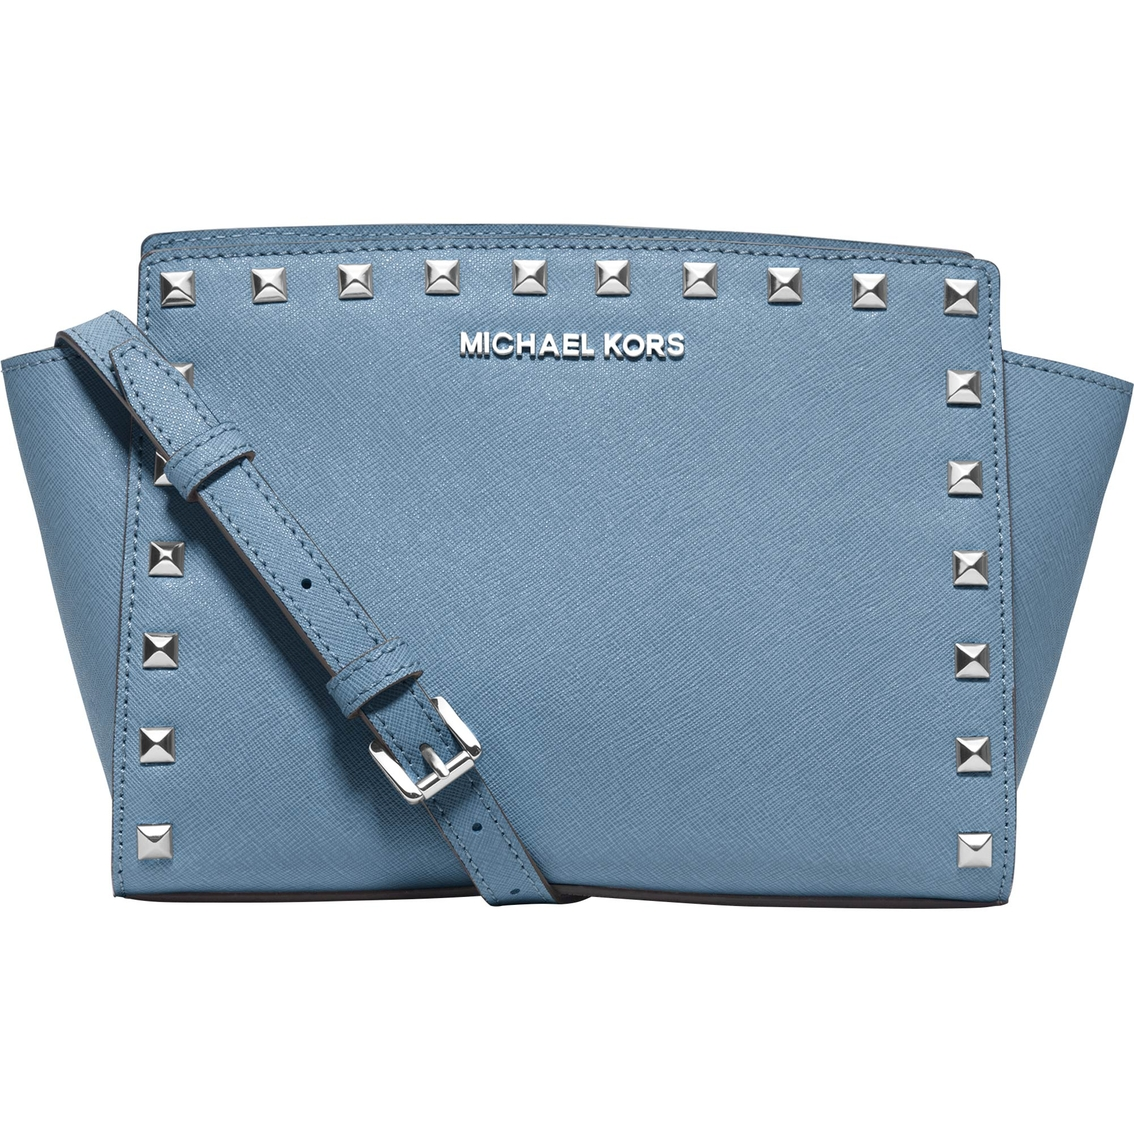 Michael Kors Selma Studded Leather Medium Messenger